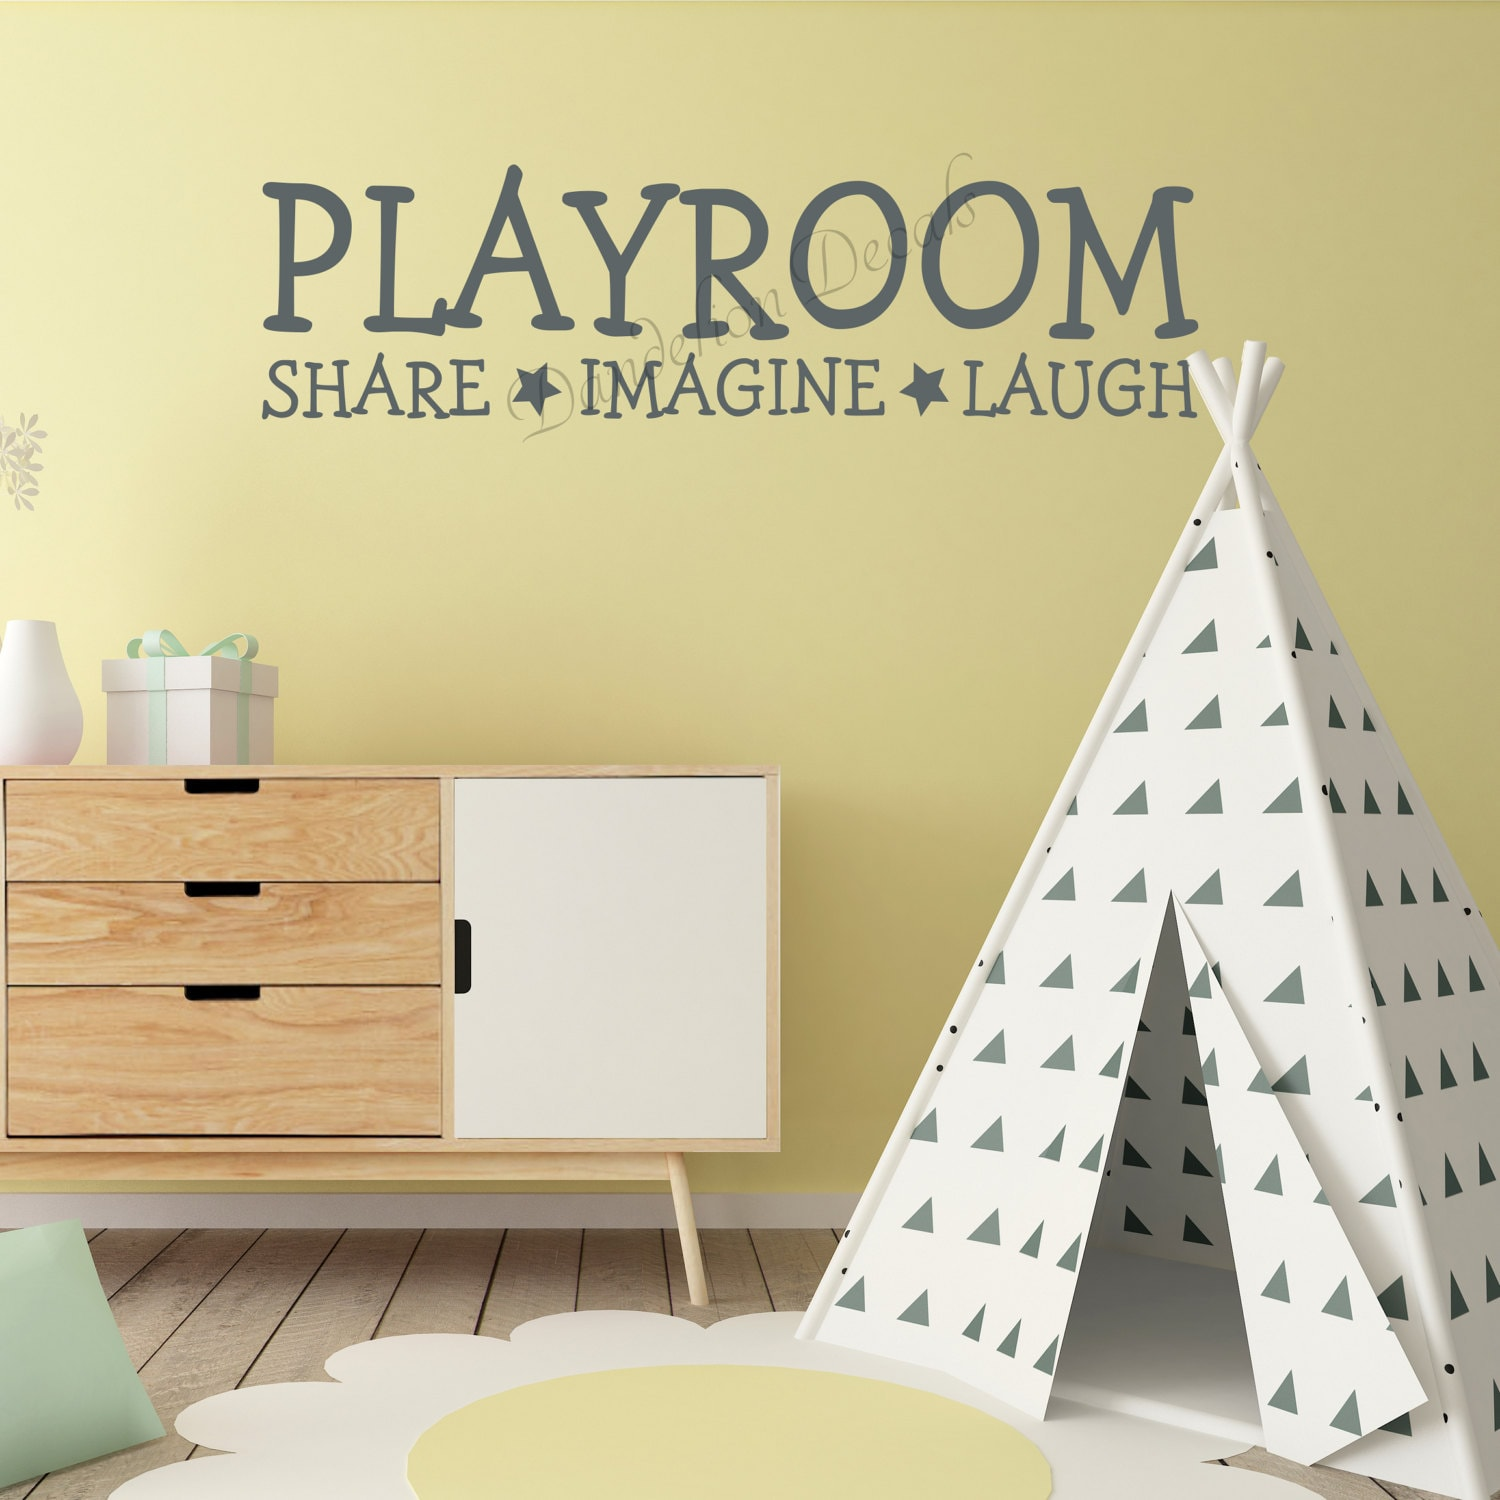 Playroom Wall Decal, Share Imagine Laugh, Kids Room Wall Decal ...